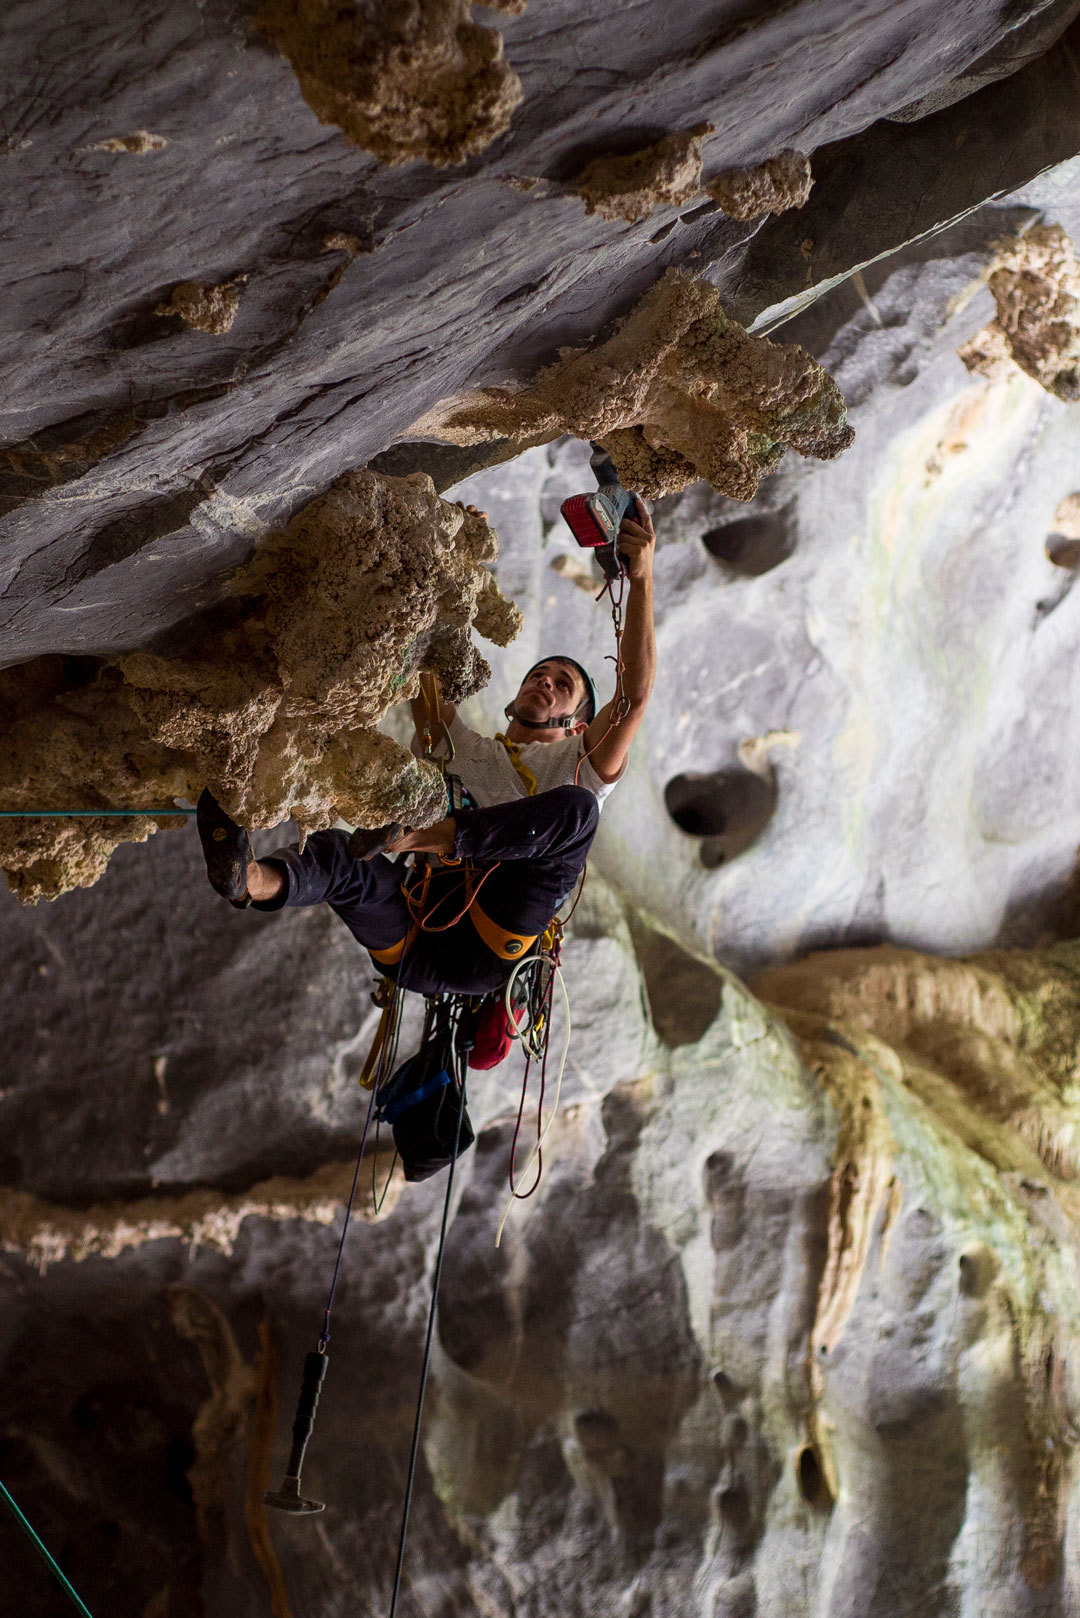 Tito bolting a still-undone 5.14 Photo: Cameron Maier